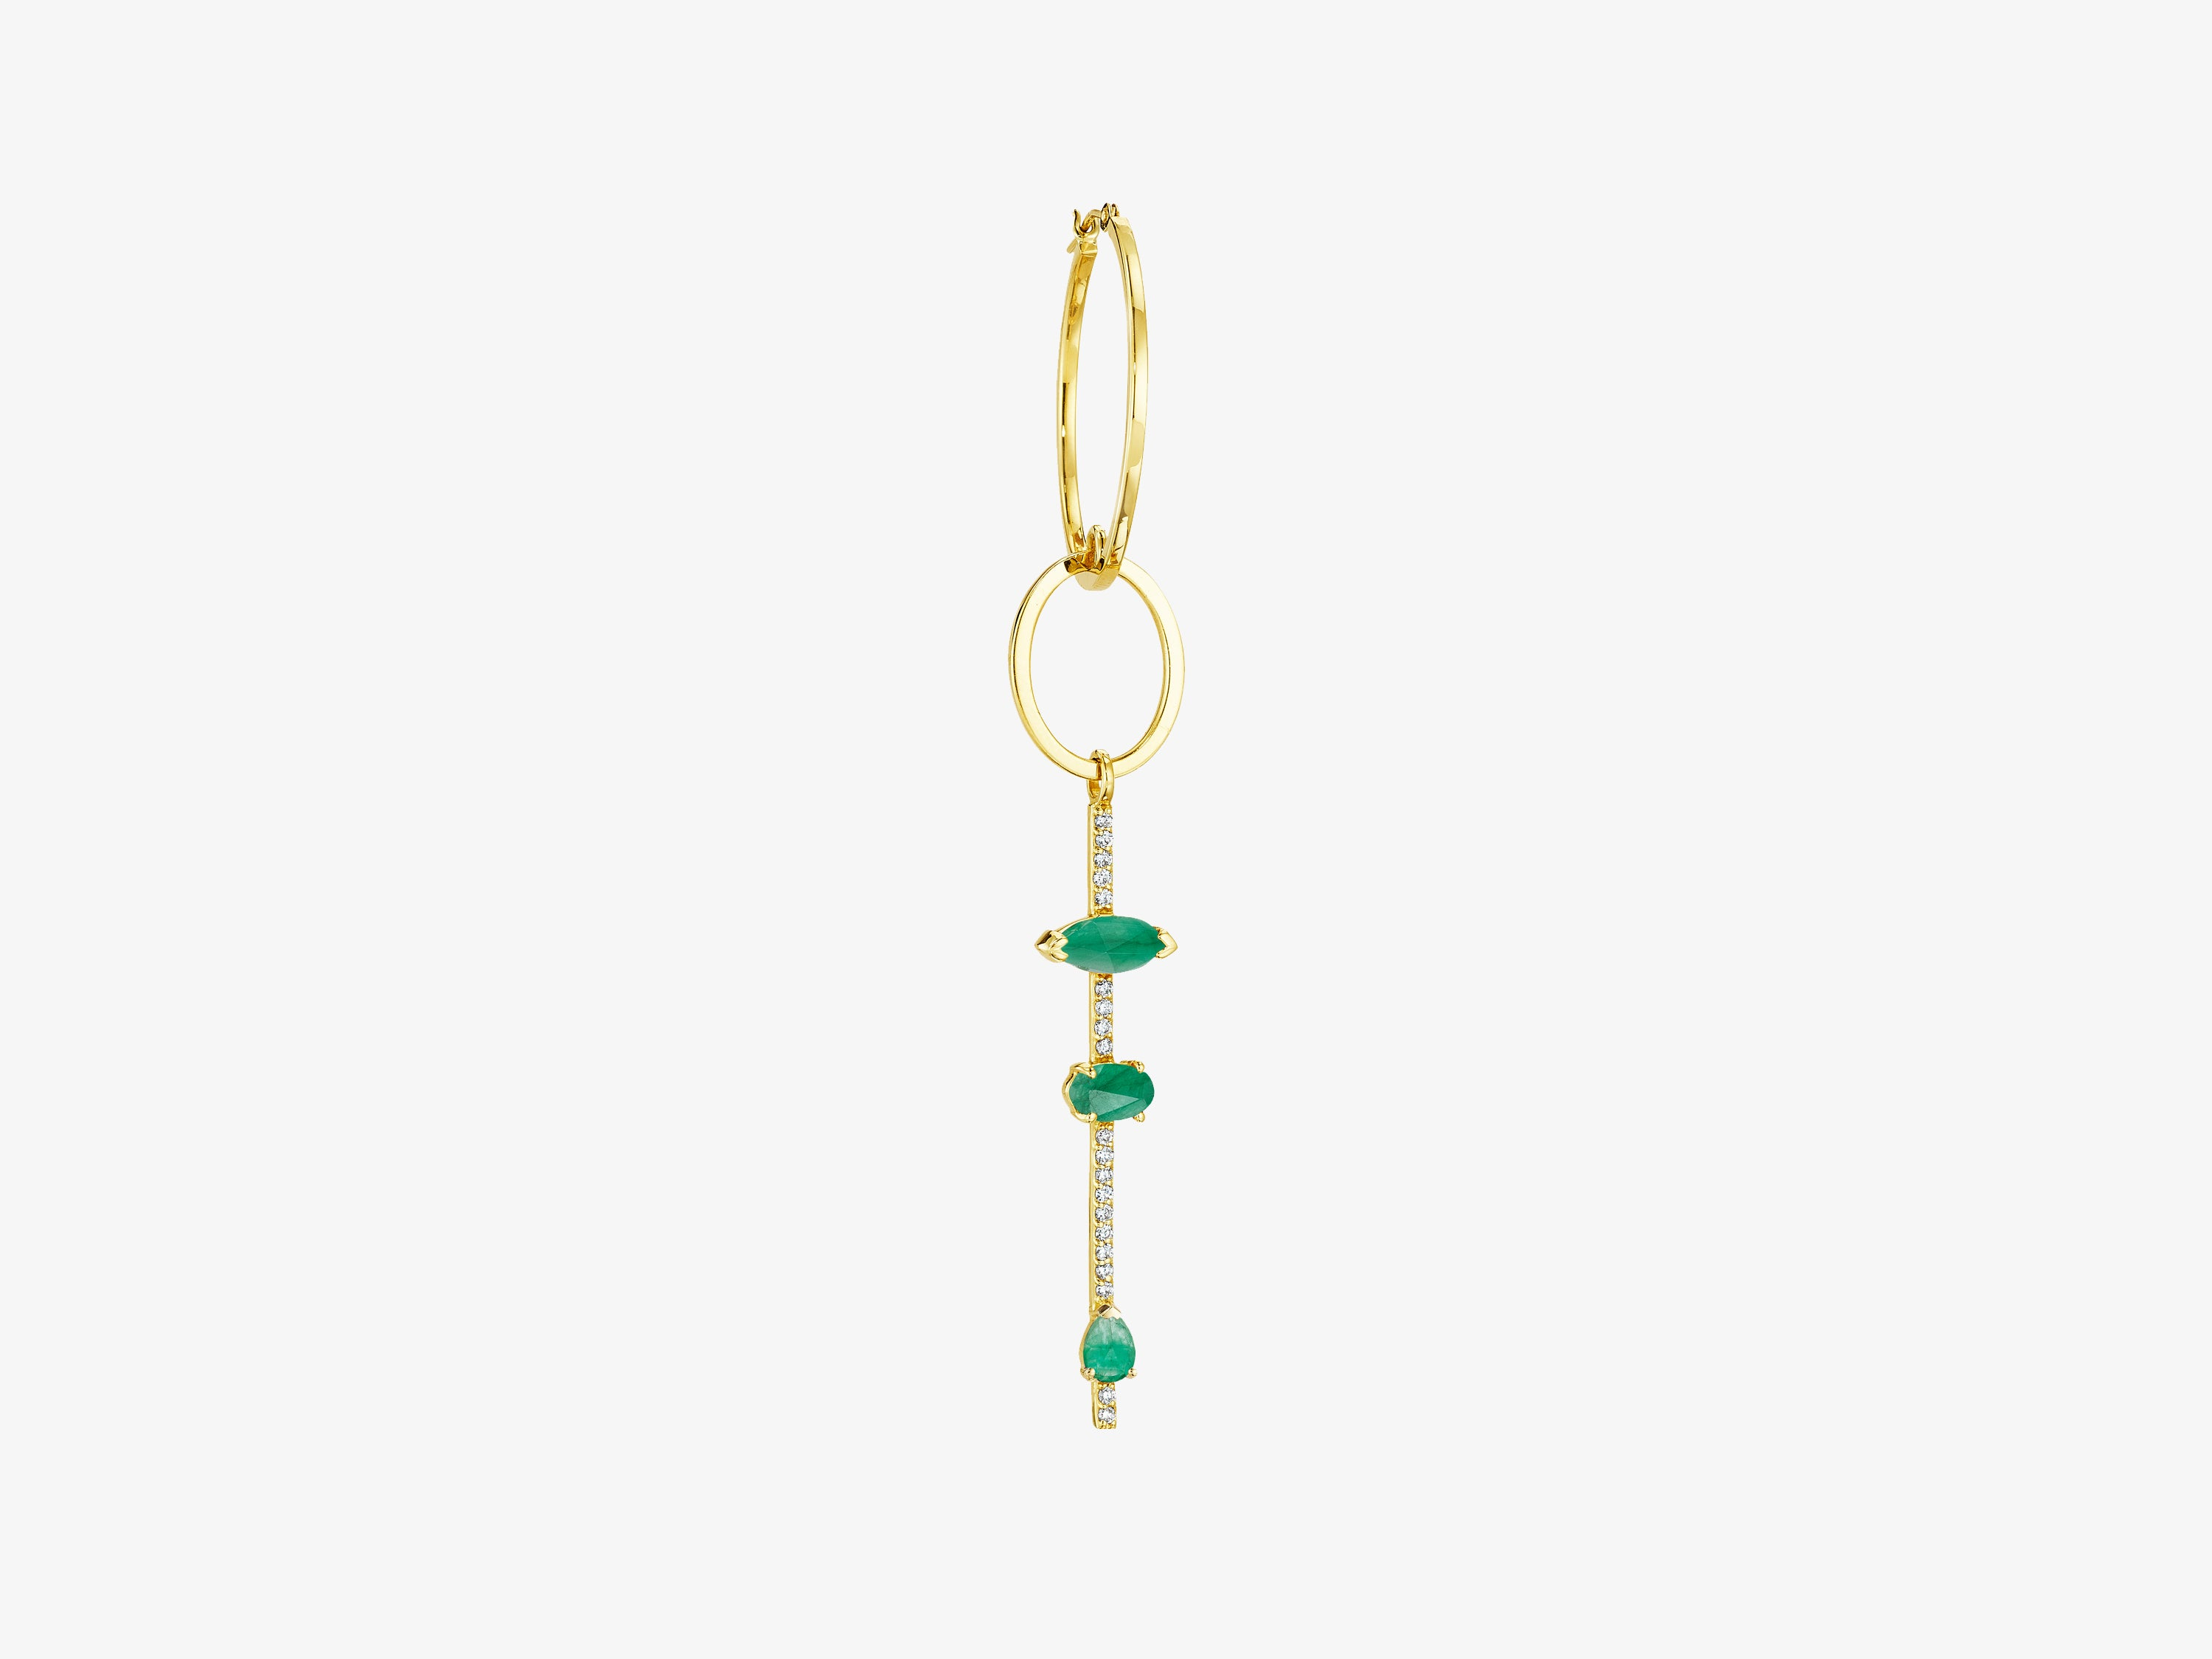 Single Statement Earring with Diamond Pave Bar and Gemstone Details